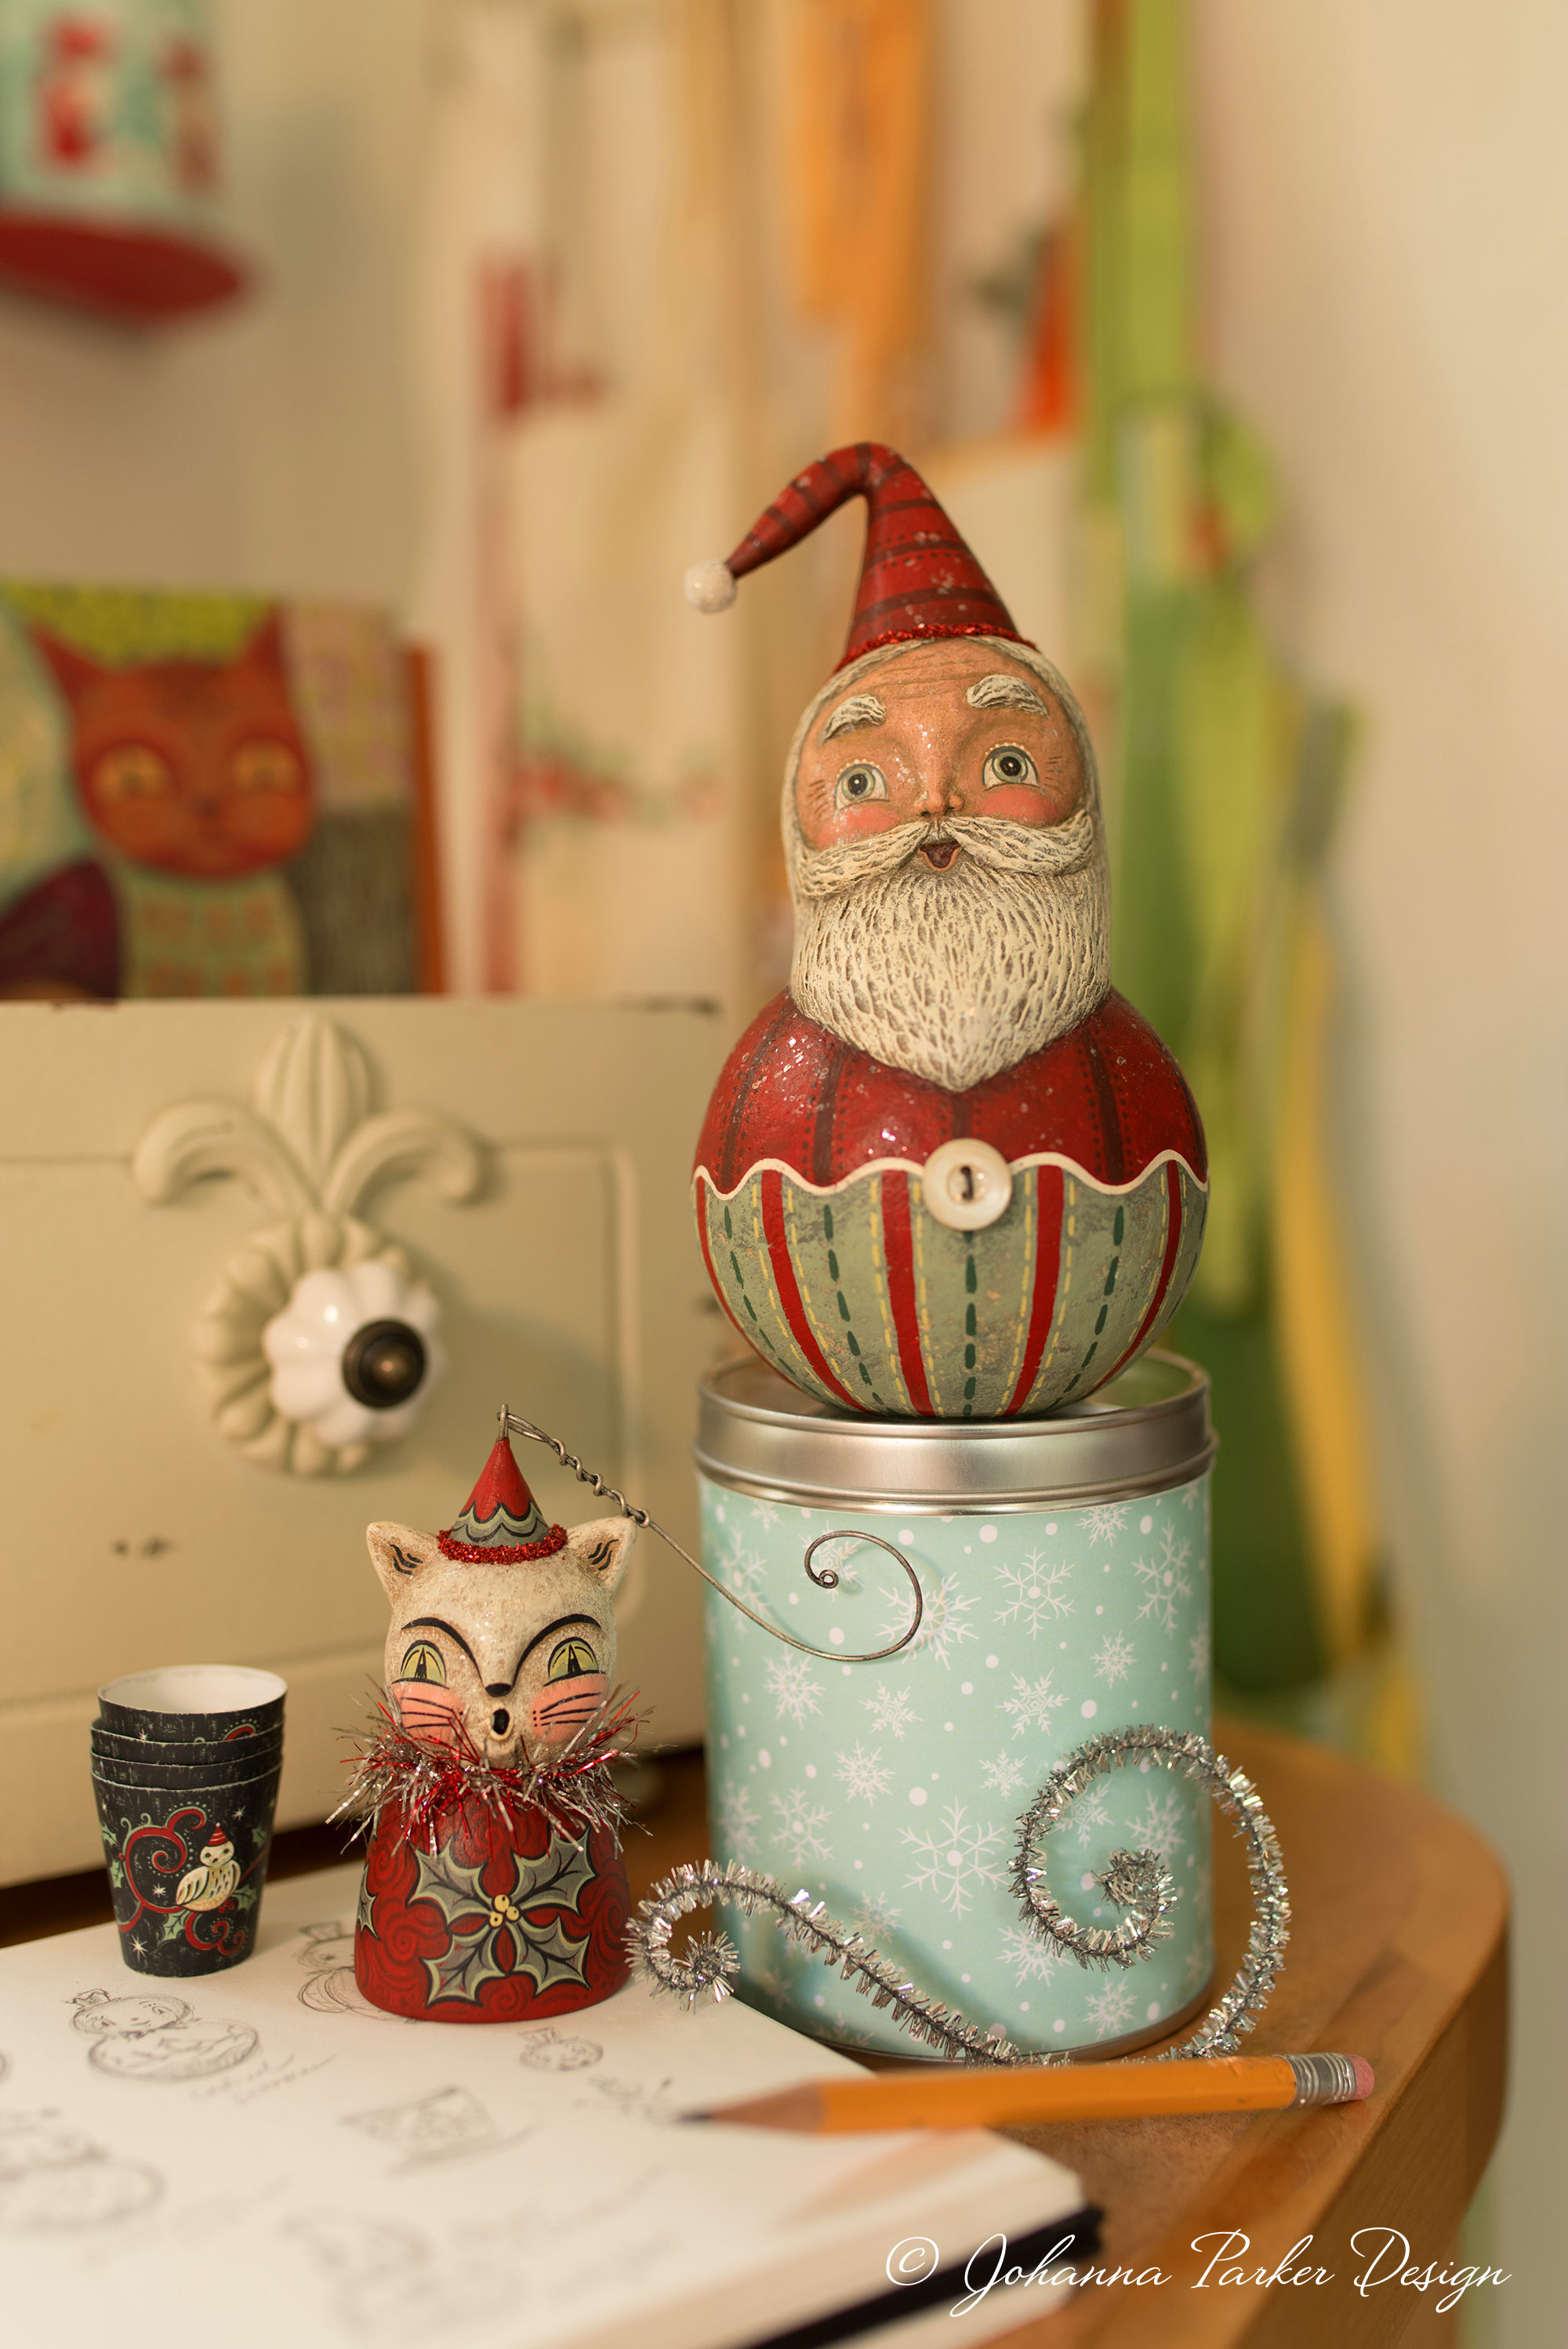 A wall nook of my hanging aprons creates a soft backdrop for my jolly ball-shaped Santa and winter kitty ornament bell.